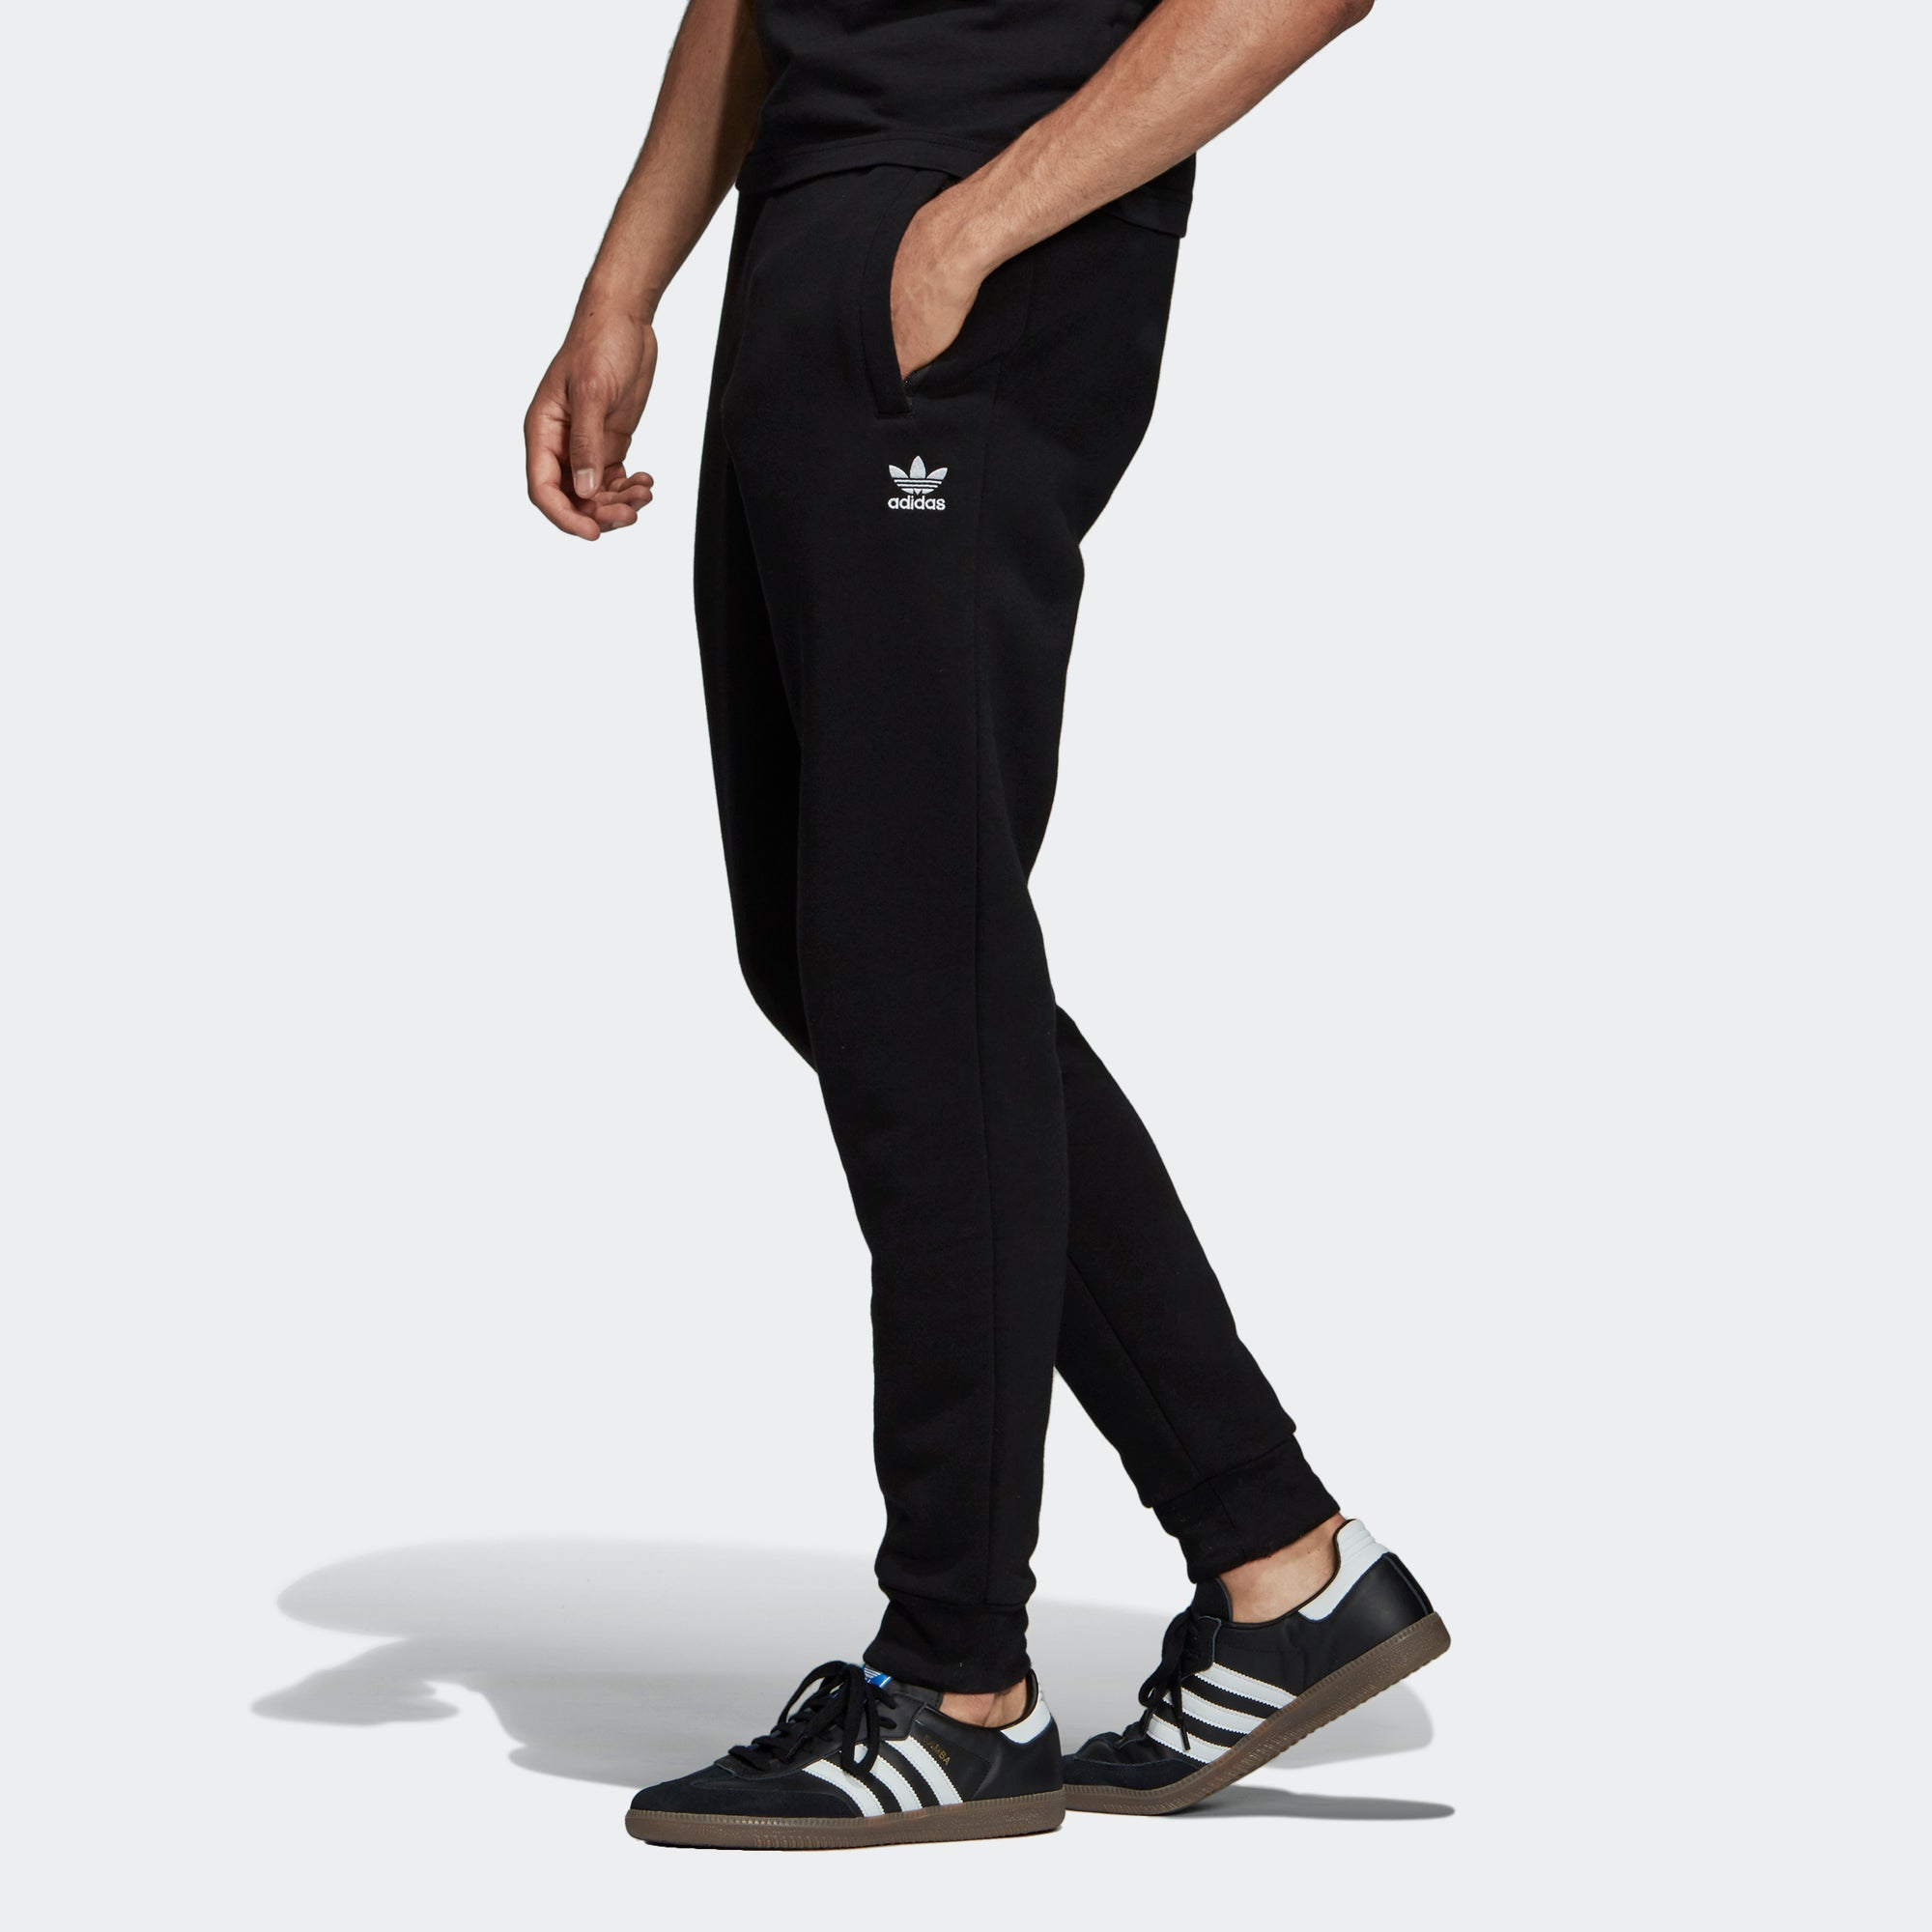 adidas fleece men's pants